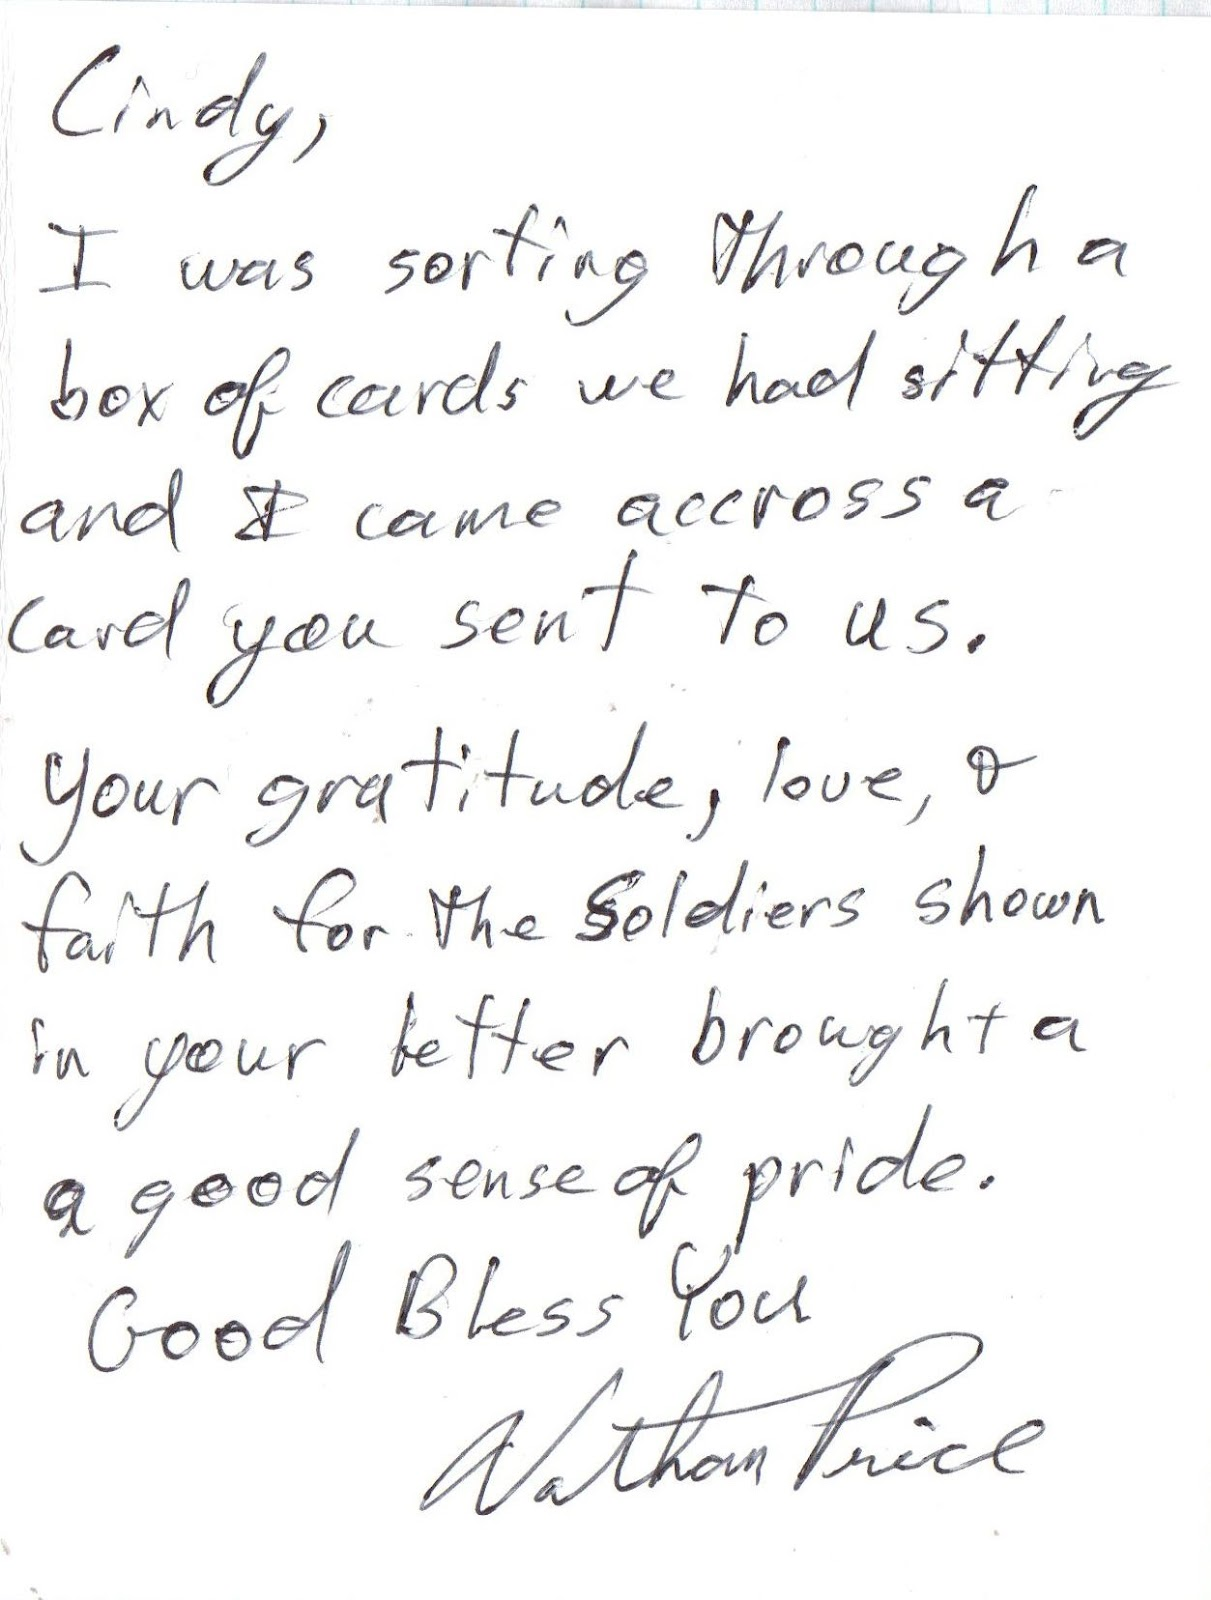 i havent ever needed confirmation on why i make cards for operation write home and send any hero letters to our soldiers overseas but let me tell you the